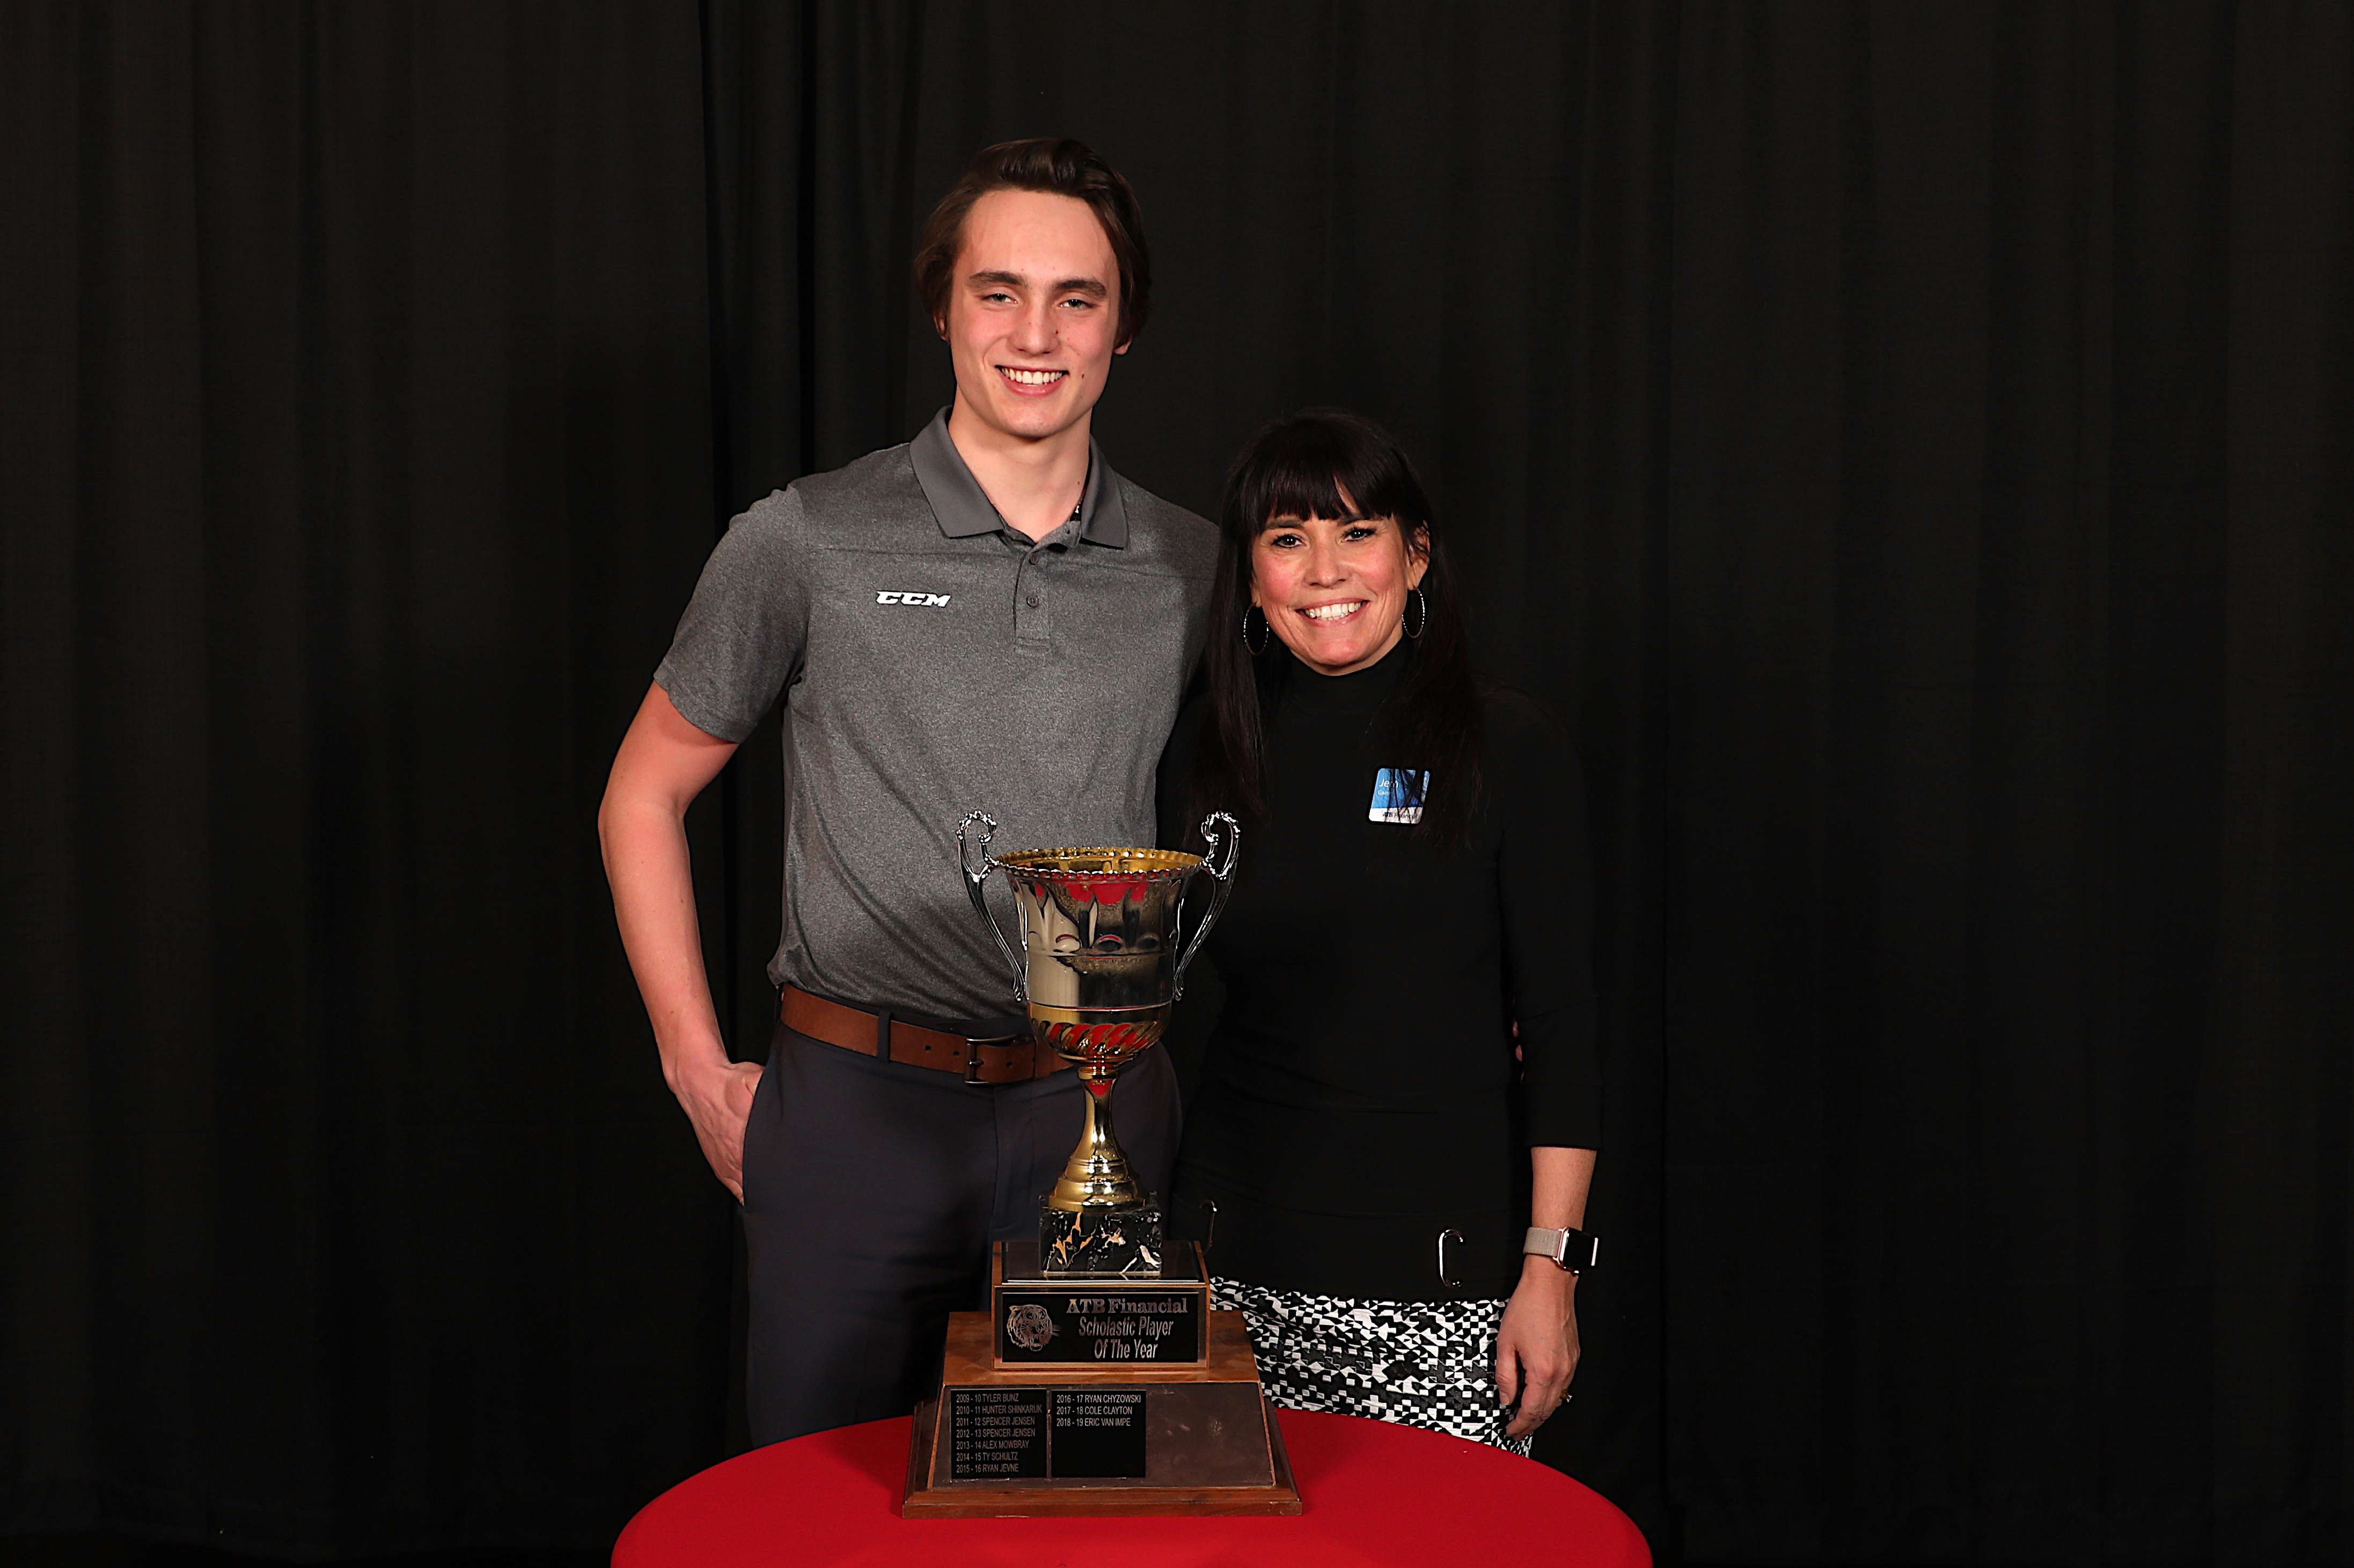 Jerri Gainer, Branch Manager at ATB Financial presented the ATB Financial Scholastic Player of the Year Award to Eric Van Impe